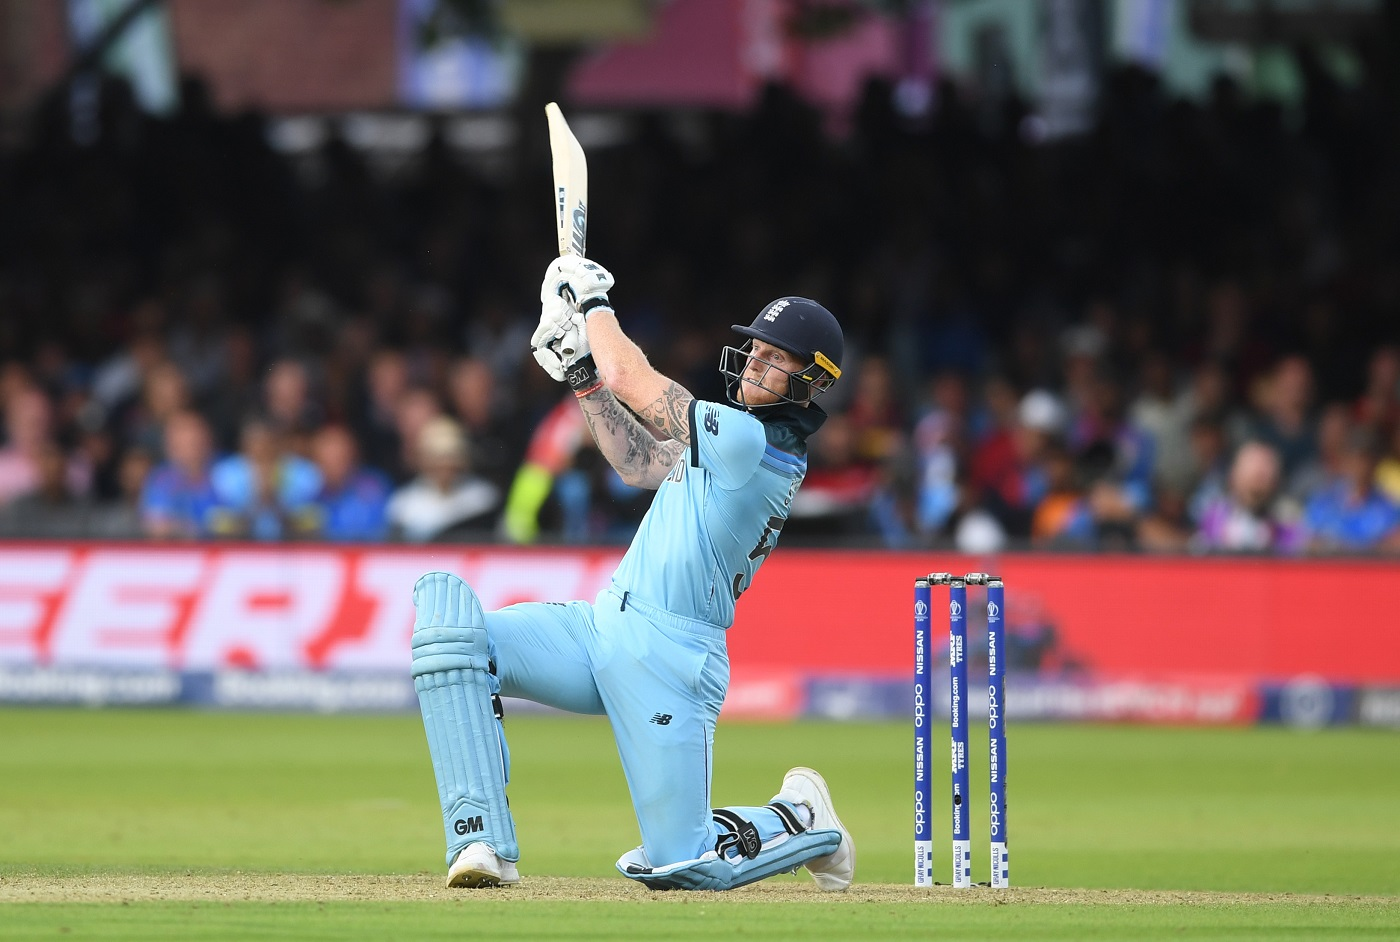 Cricket World Cup 2019: Ben Stokes and the redemption in the Final | CricketSoccer